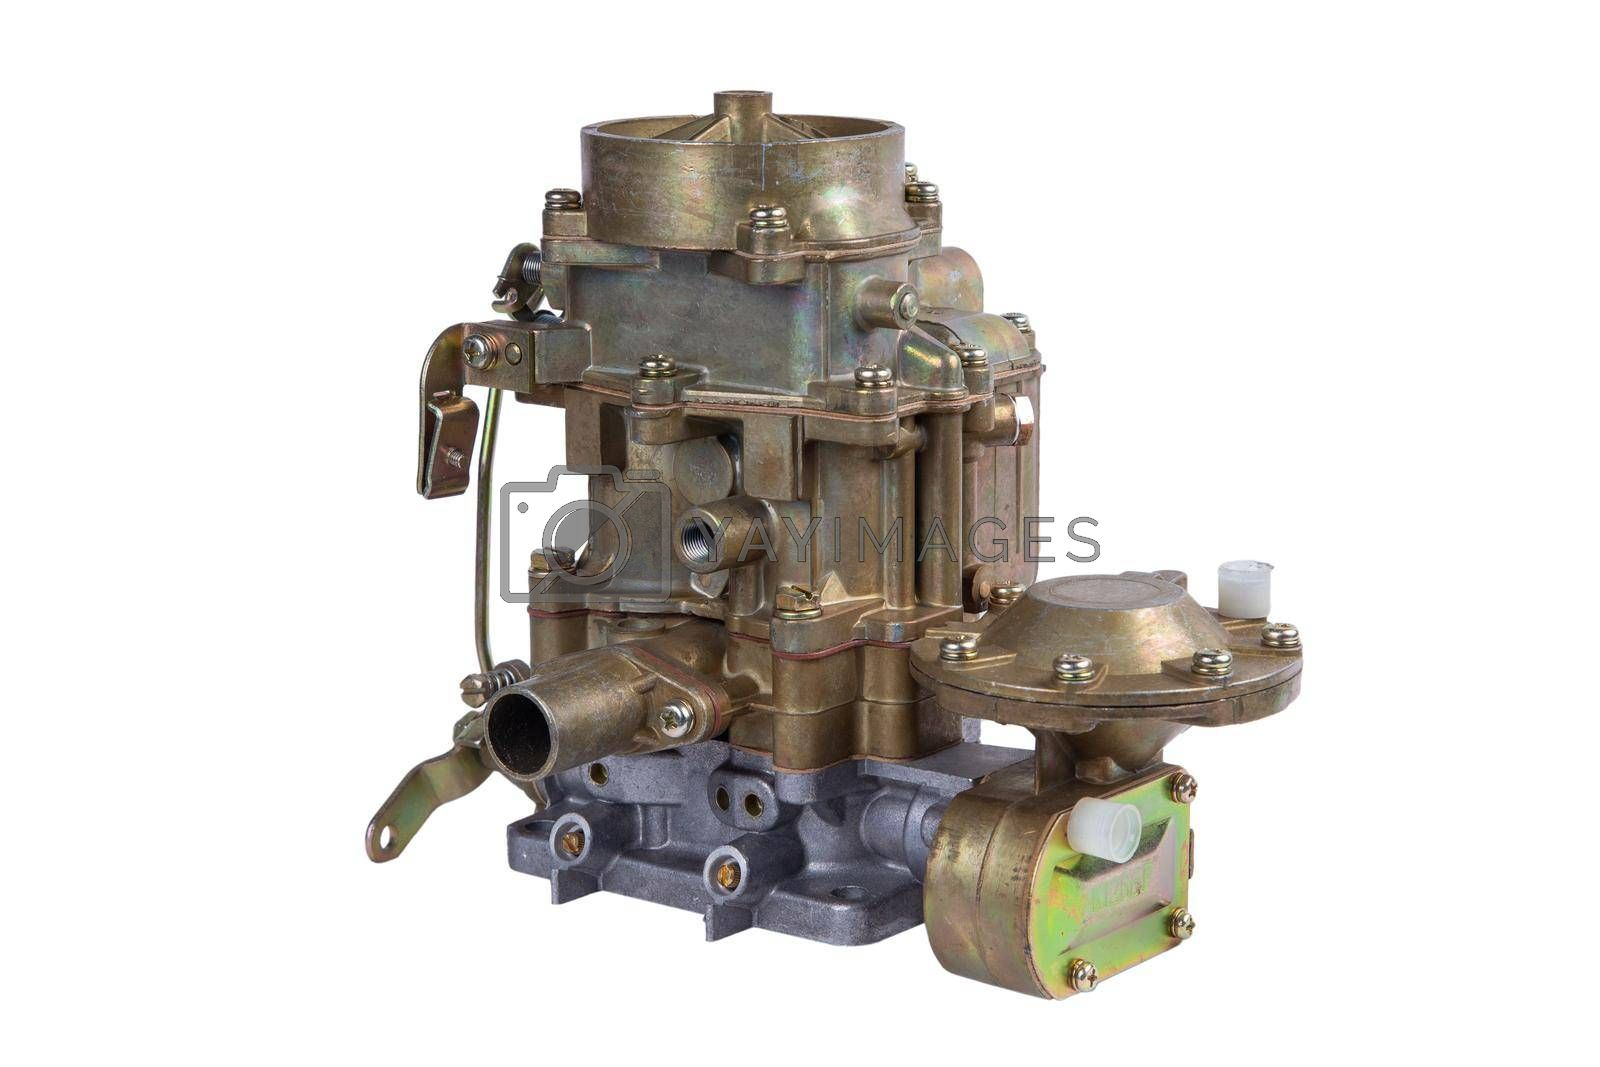 Royalty free image of new carburetor of the internal combustion engine of the car isolated on white background by forester